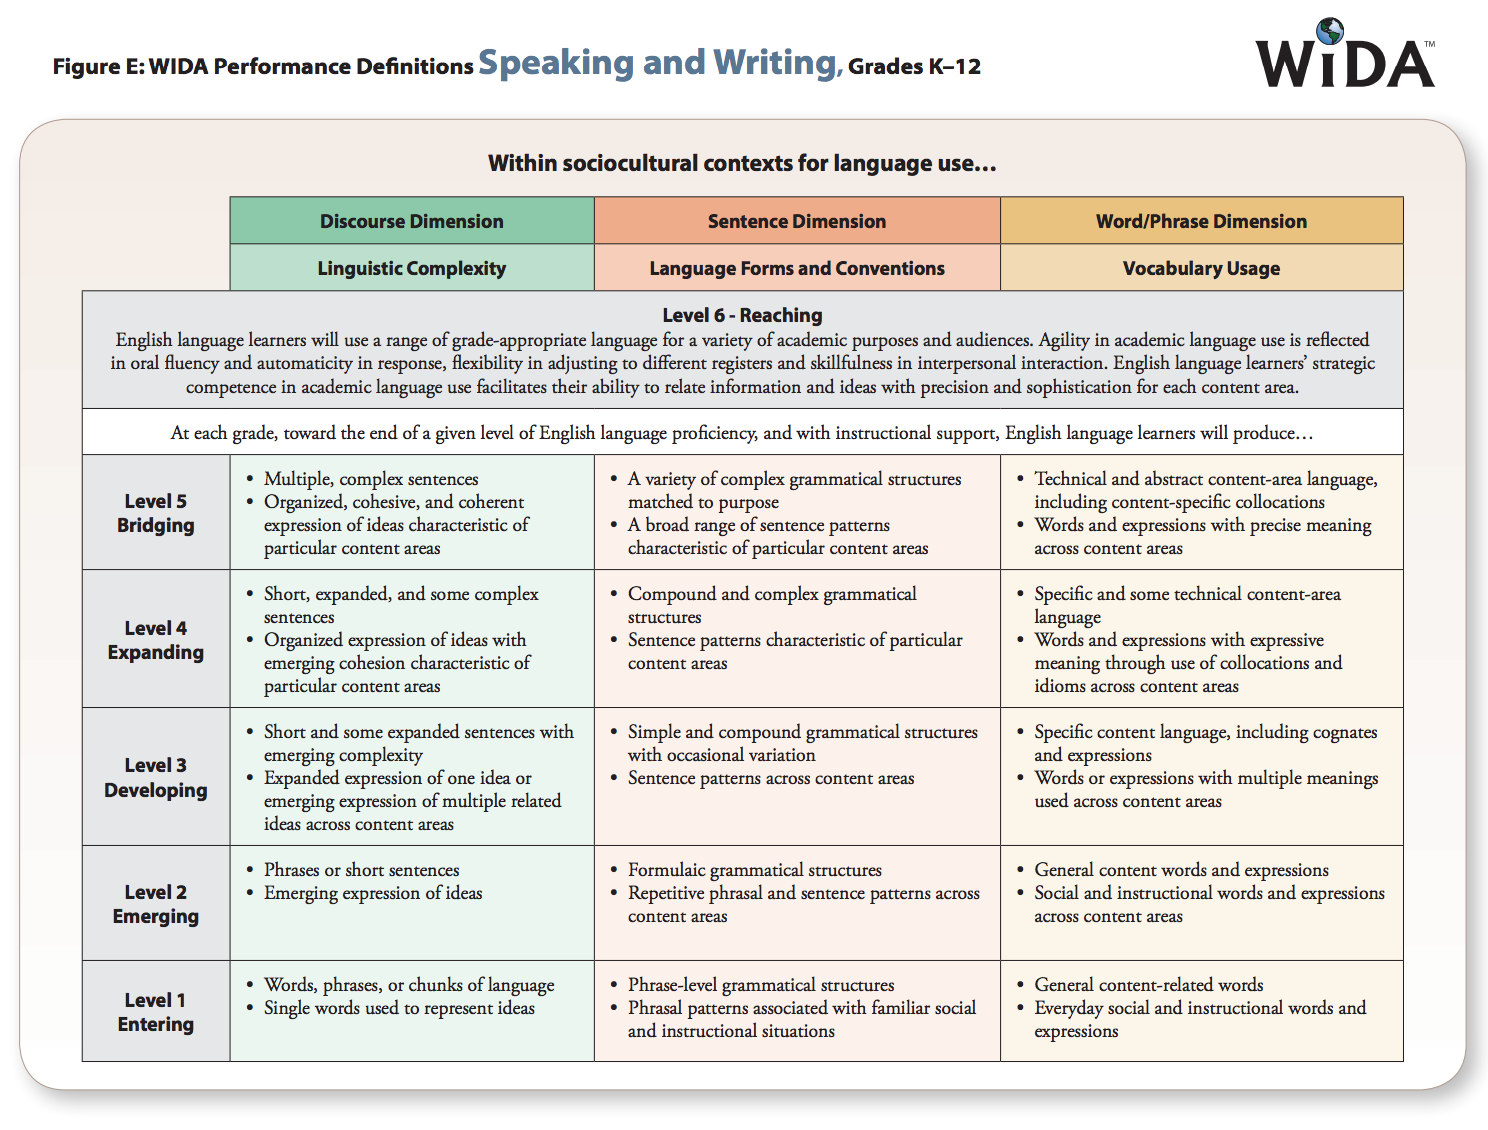 screenshot of Performance Definitions for Speaking and Writing, page 7. https://wida.wisc.edu/sites/default/files/resource/2012-ELD-Standards.pdf